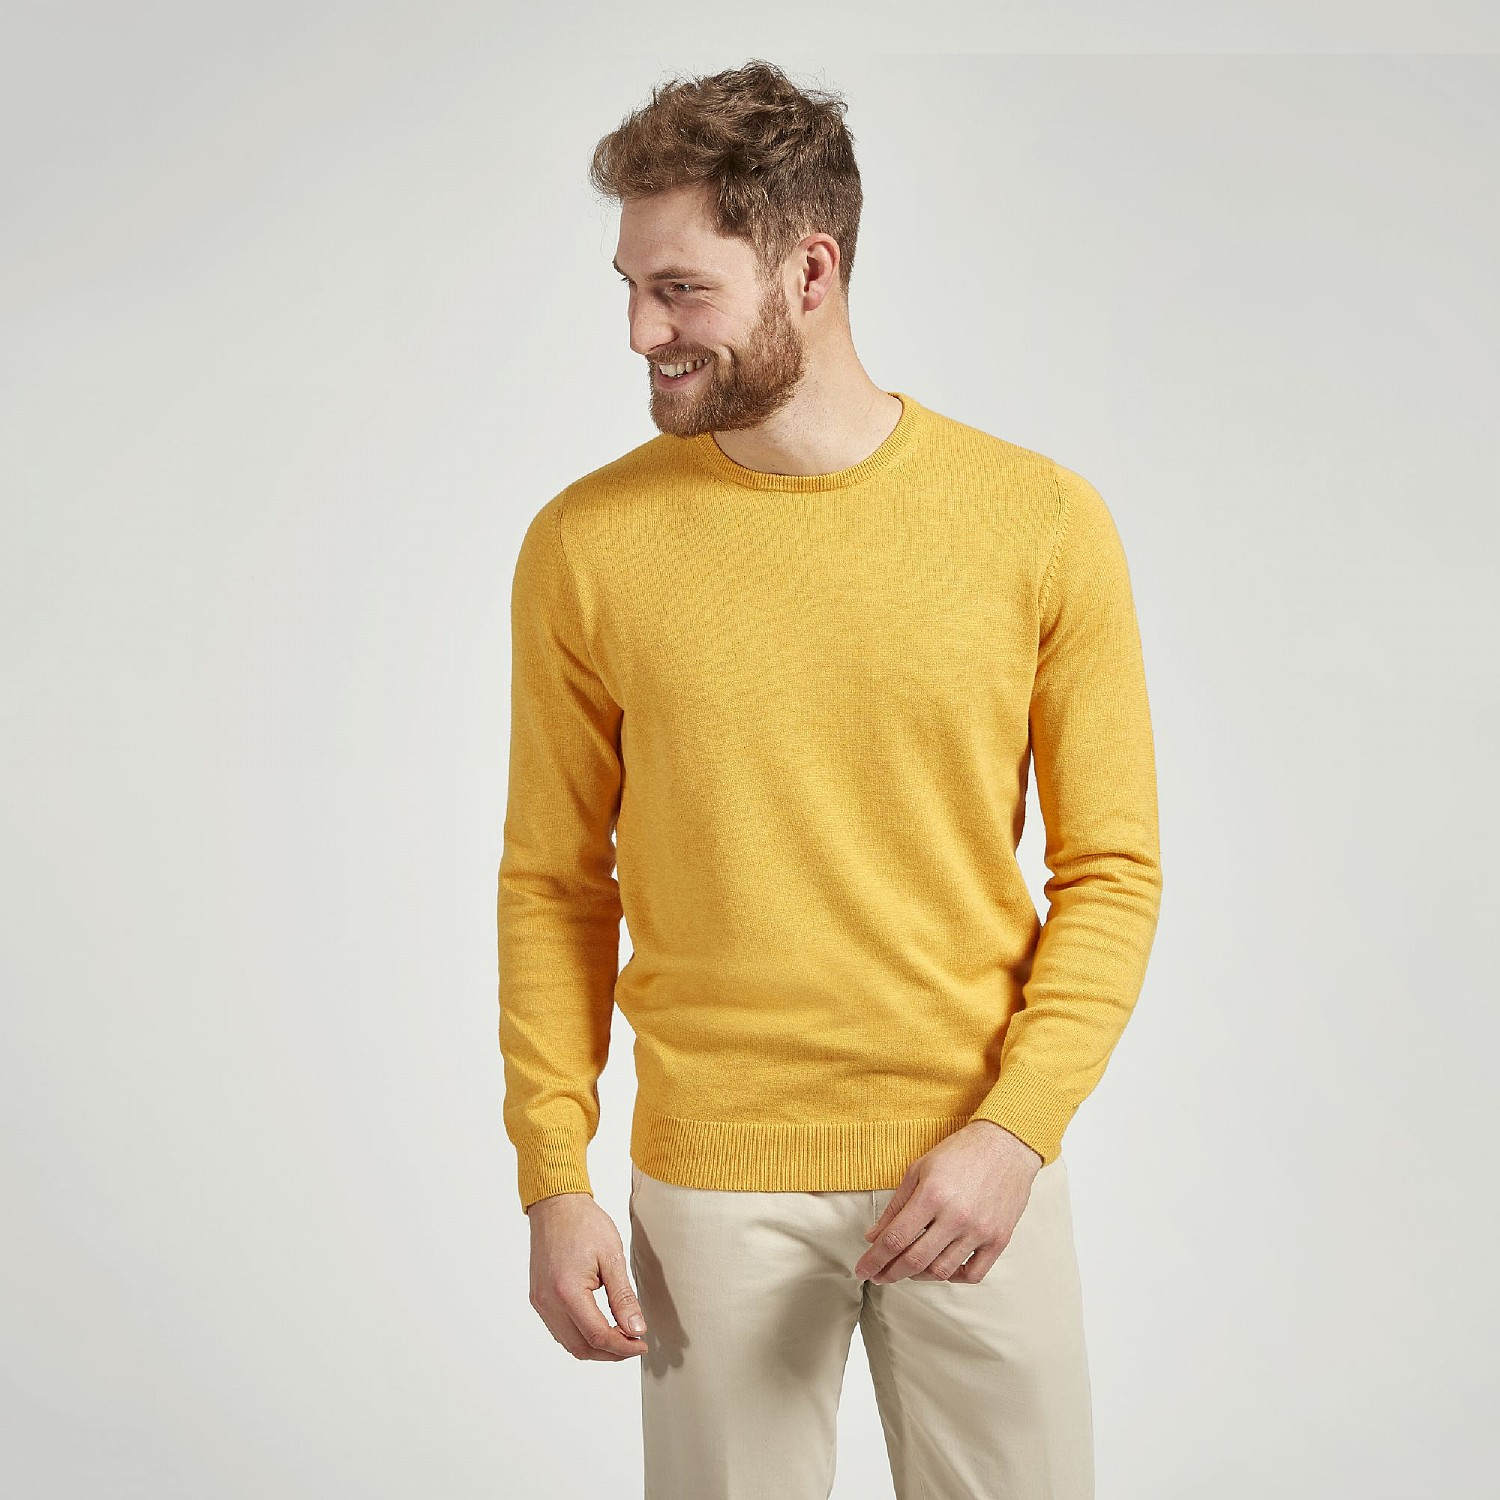 YELLOW COTTON CASHMERE CREW NECK JUMPER